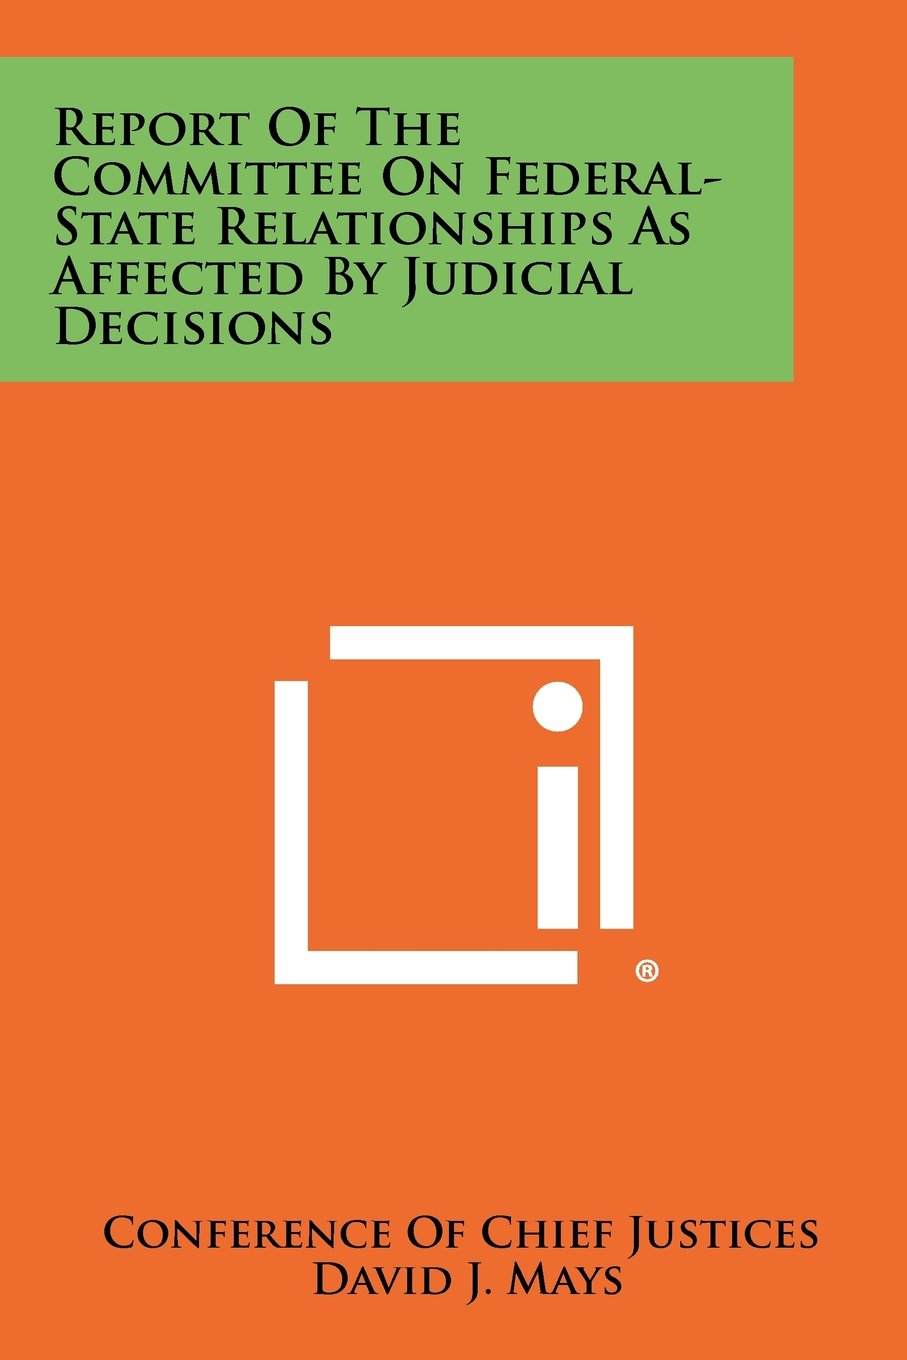 Report of the Committee on Federal-State Relationships as Affected by Judicial Decisions pdf